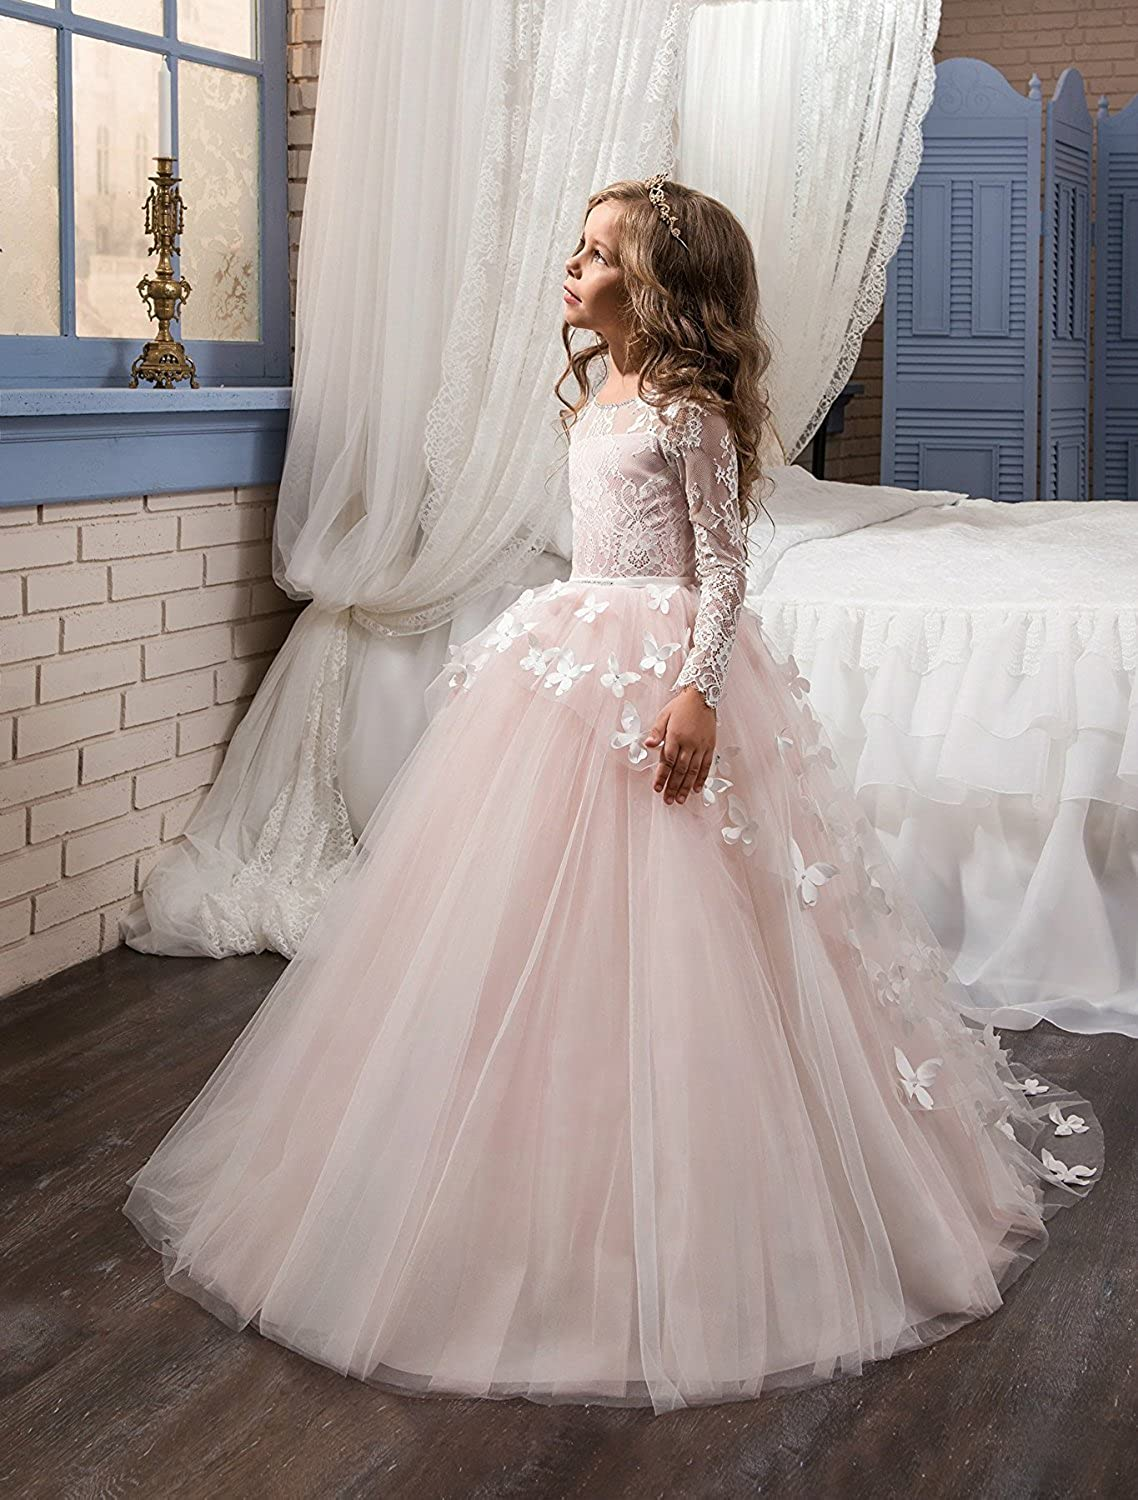 7383d943d1 Amazon.com  ABaowedding Flower Girls  Dress for Wedding Butterflies Long  Sleeve Princess Dress  Clothing